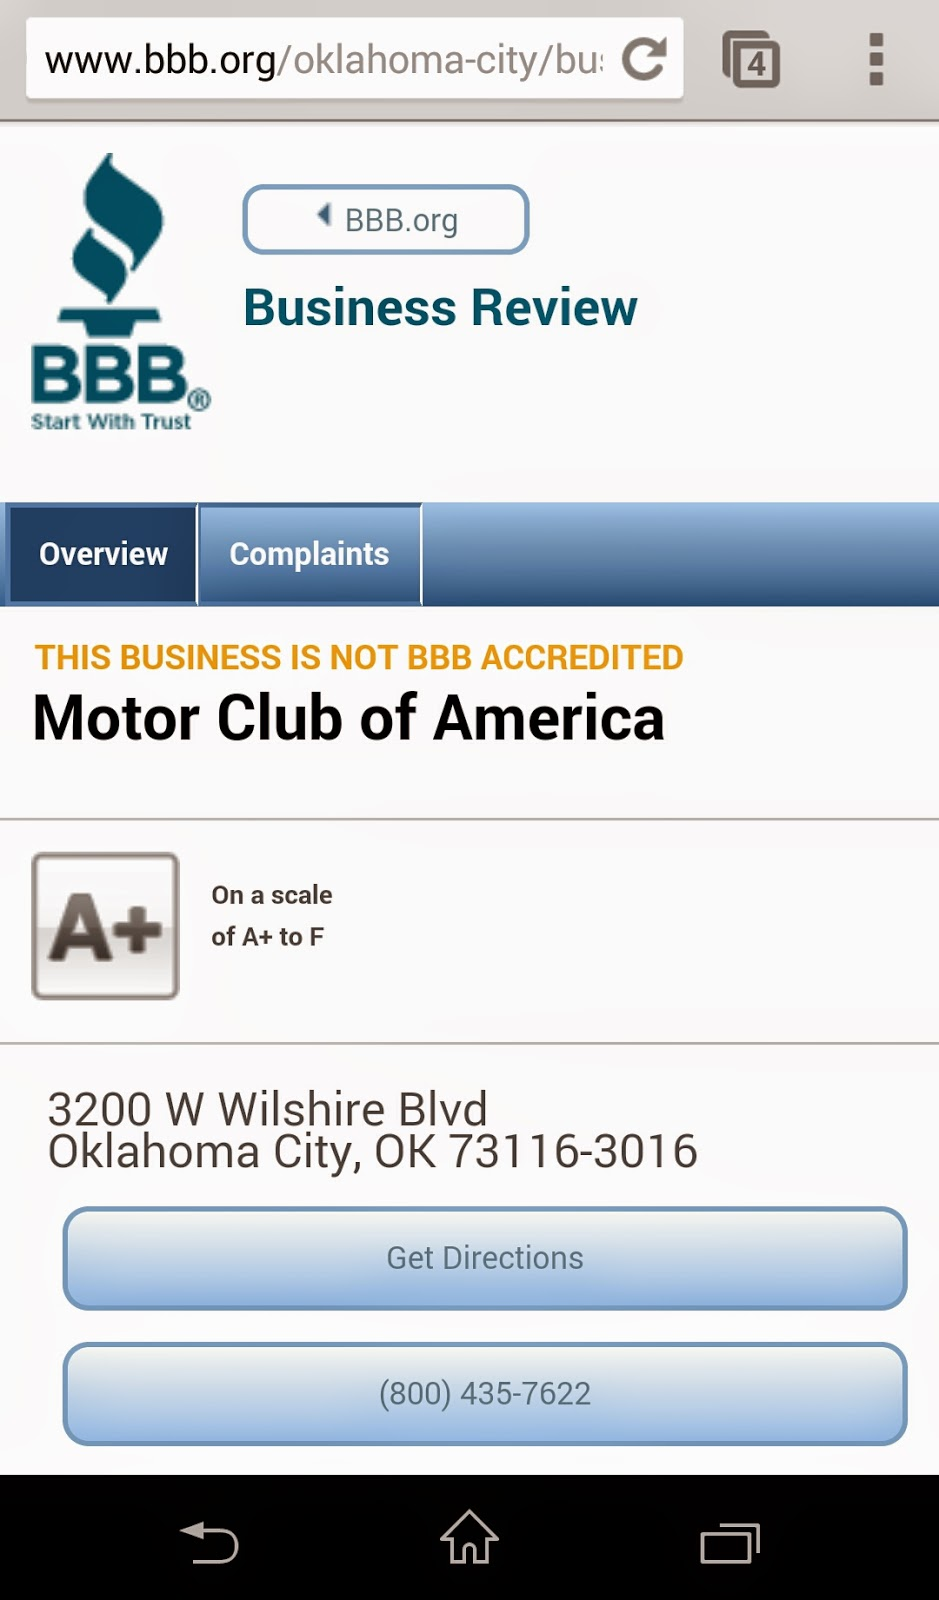 motor club of america mca scam mca hidden agendas